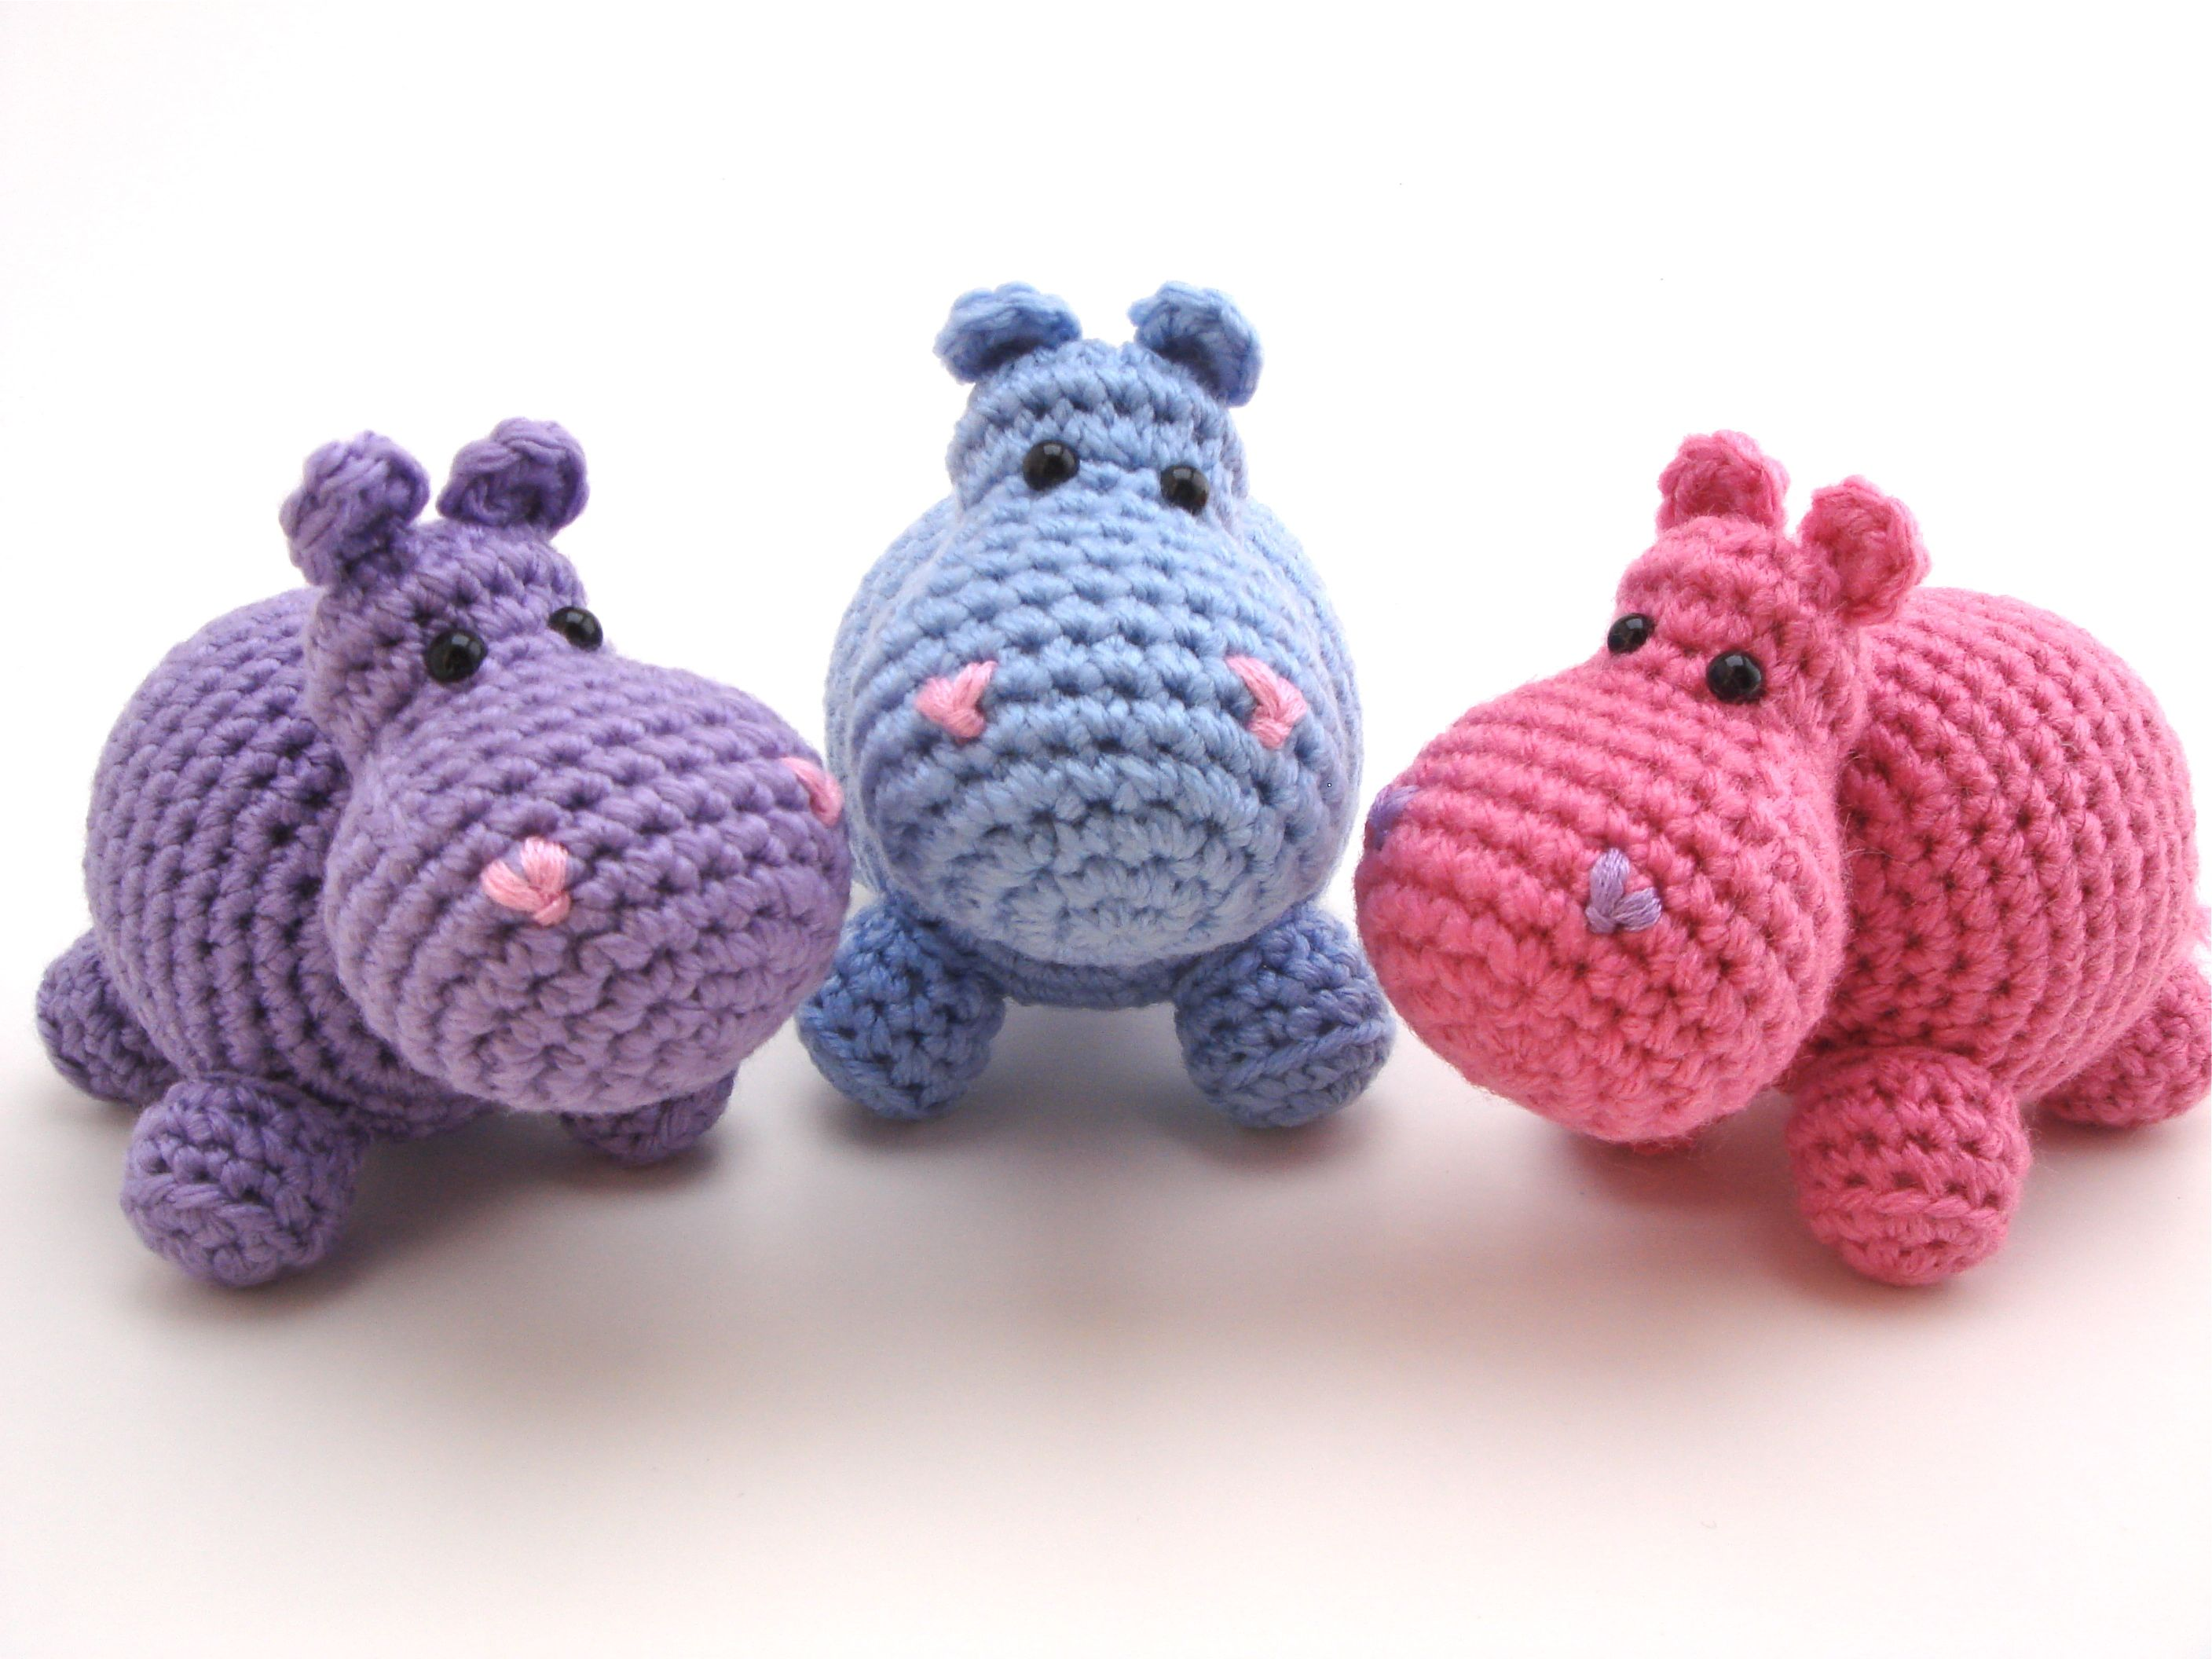 Amigurumi Hippo Pattern Free : Super cute amigurumi hippos! No pattern but this is a ...